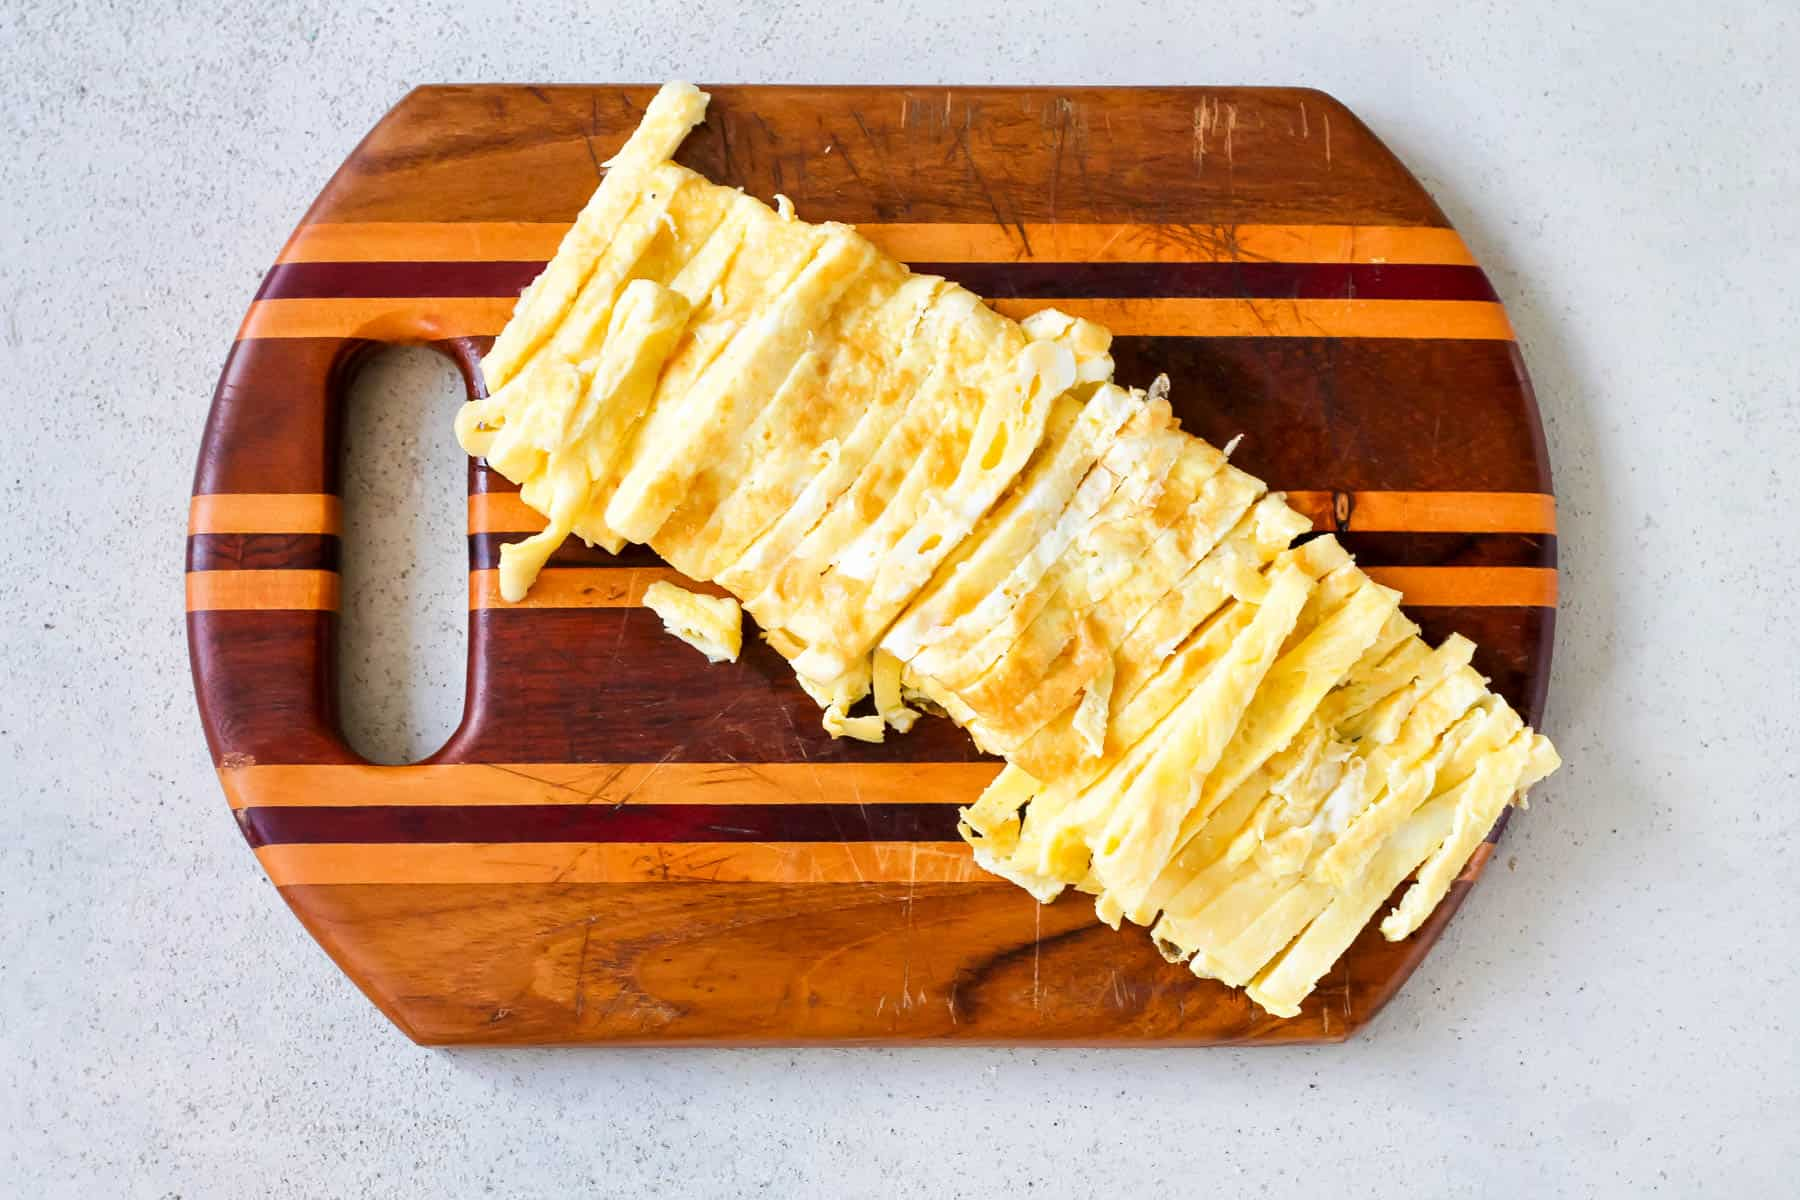 a thinly sliced omelet on a wooden cutting board